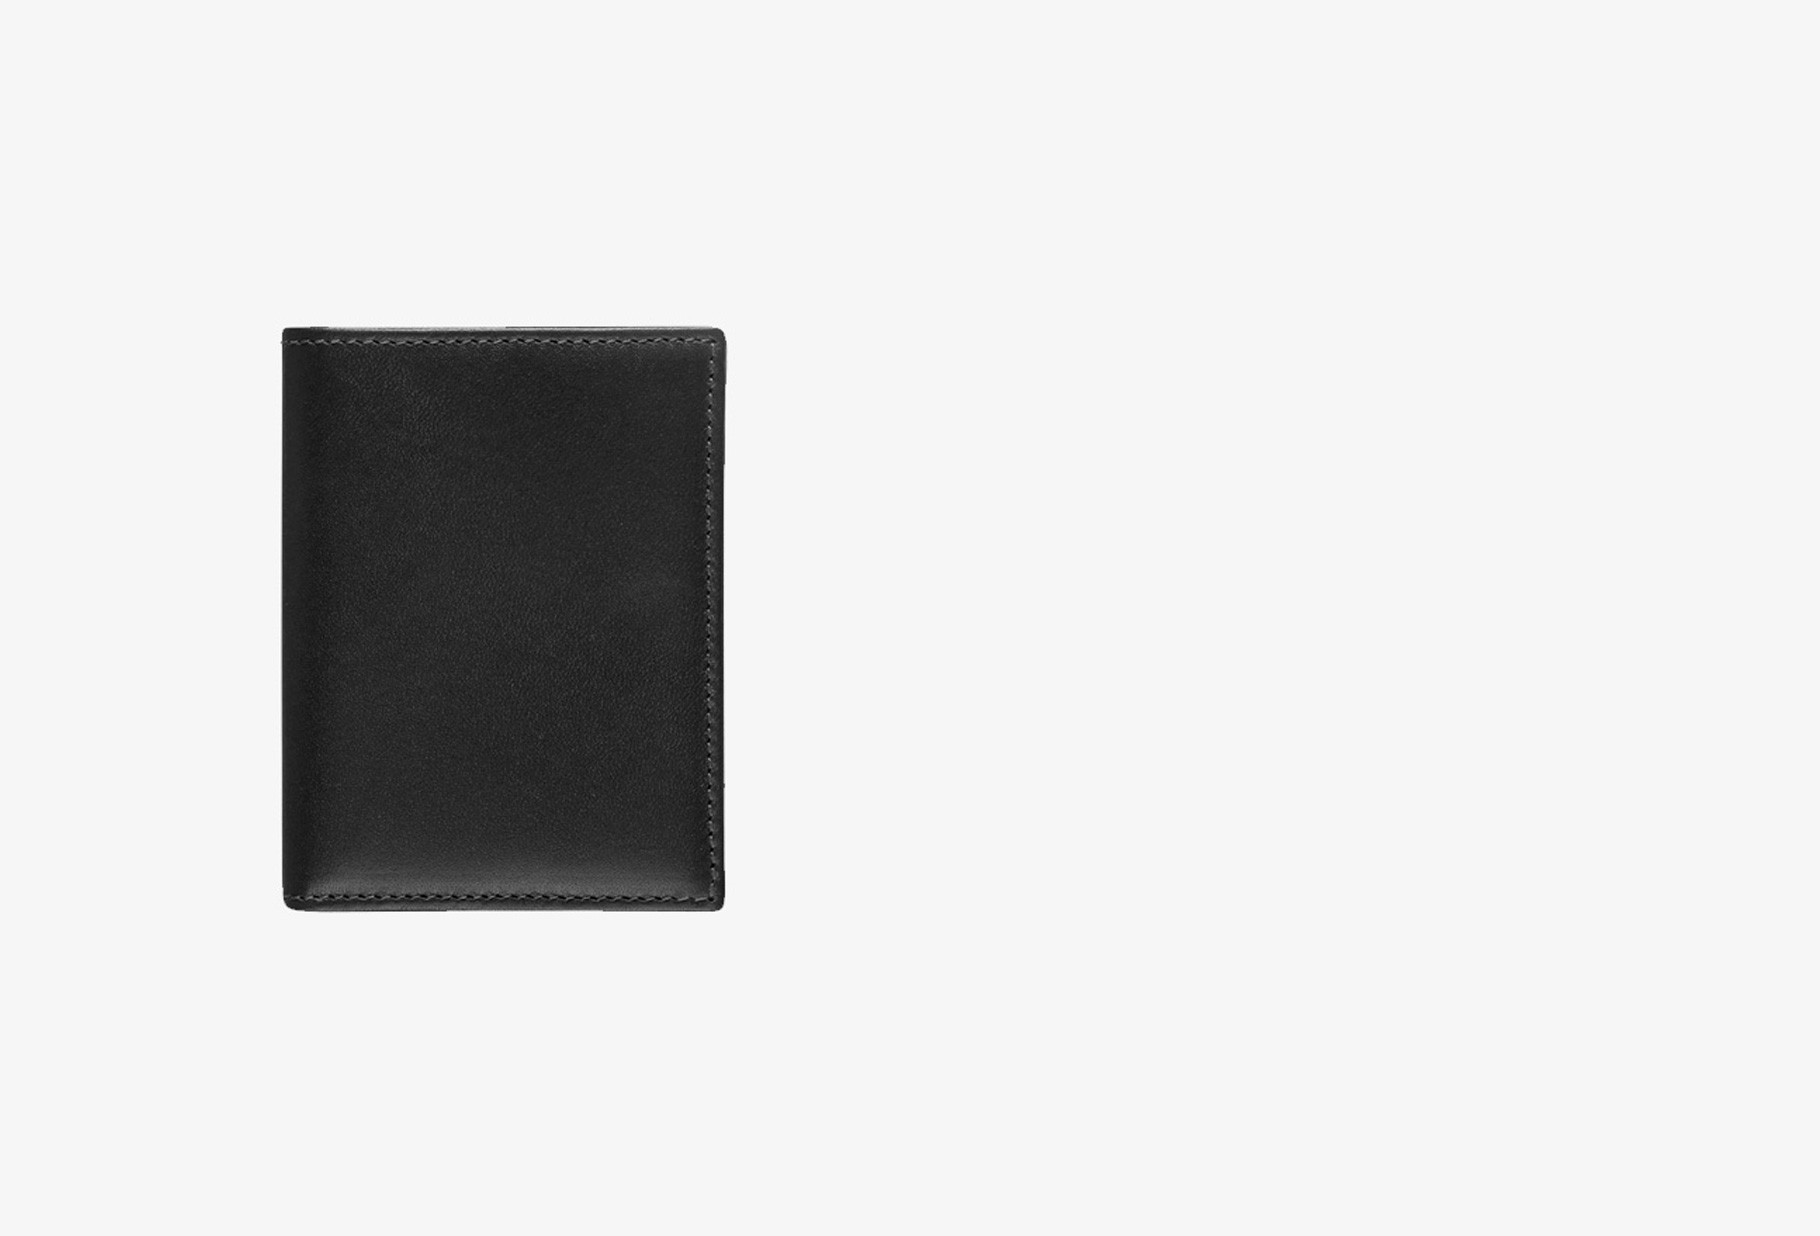 CDG WALLETS / Cdg classic leather sa0641 Black